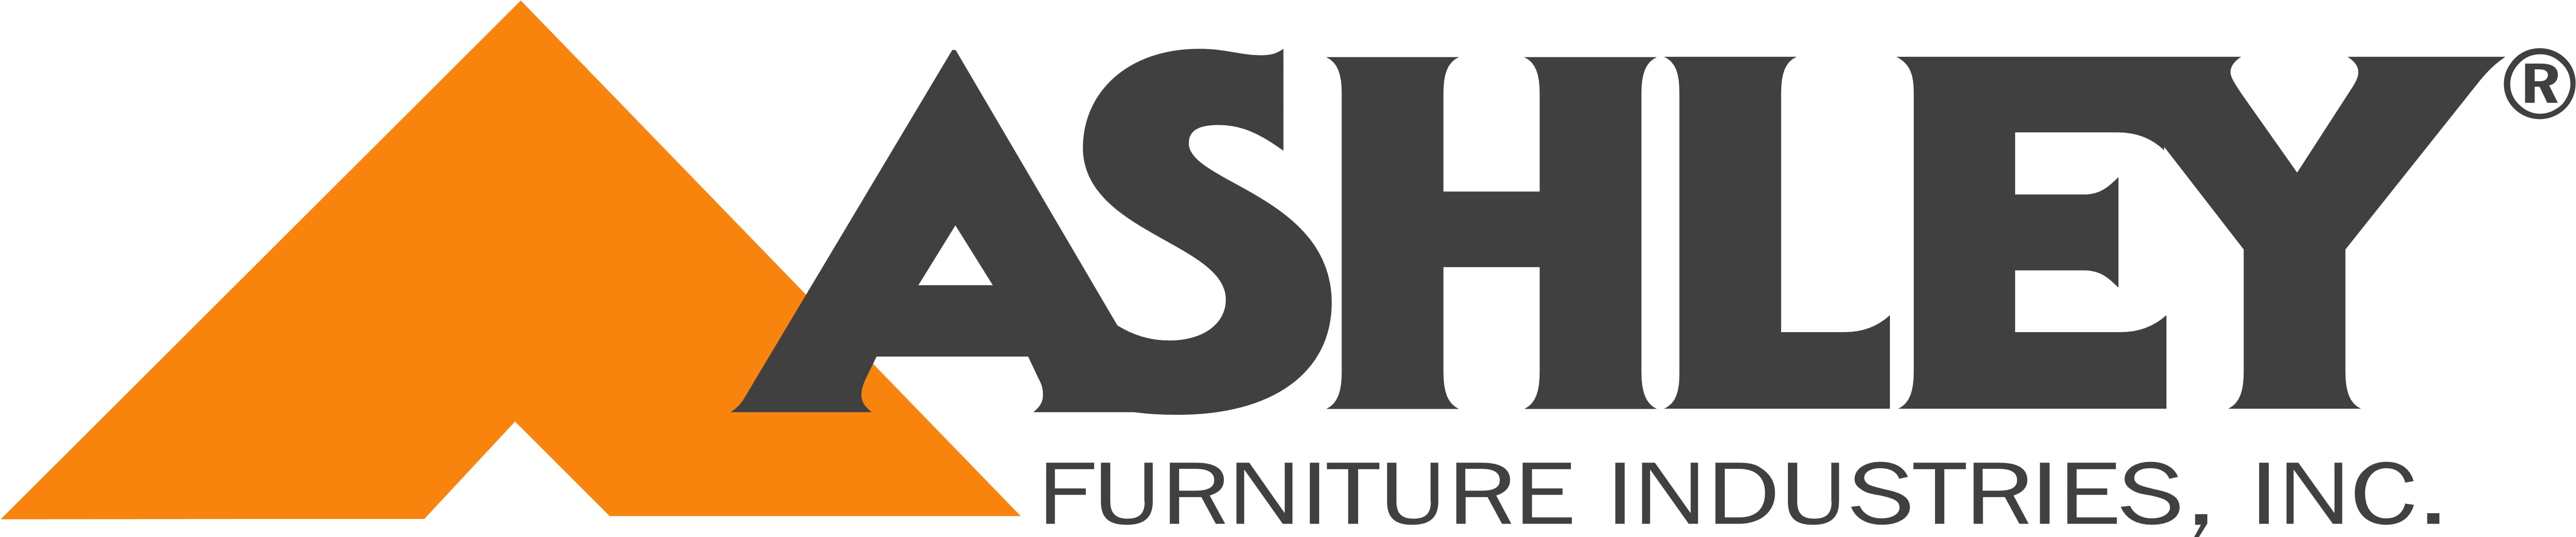 ashley furniture logo clipart 10 free Cliparts | Download ...